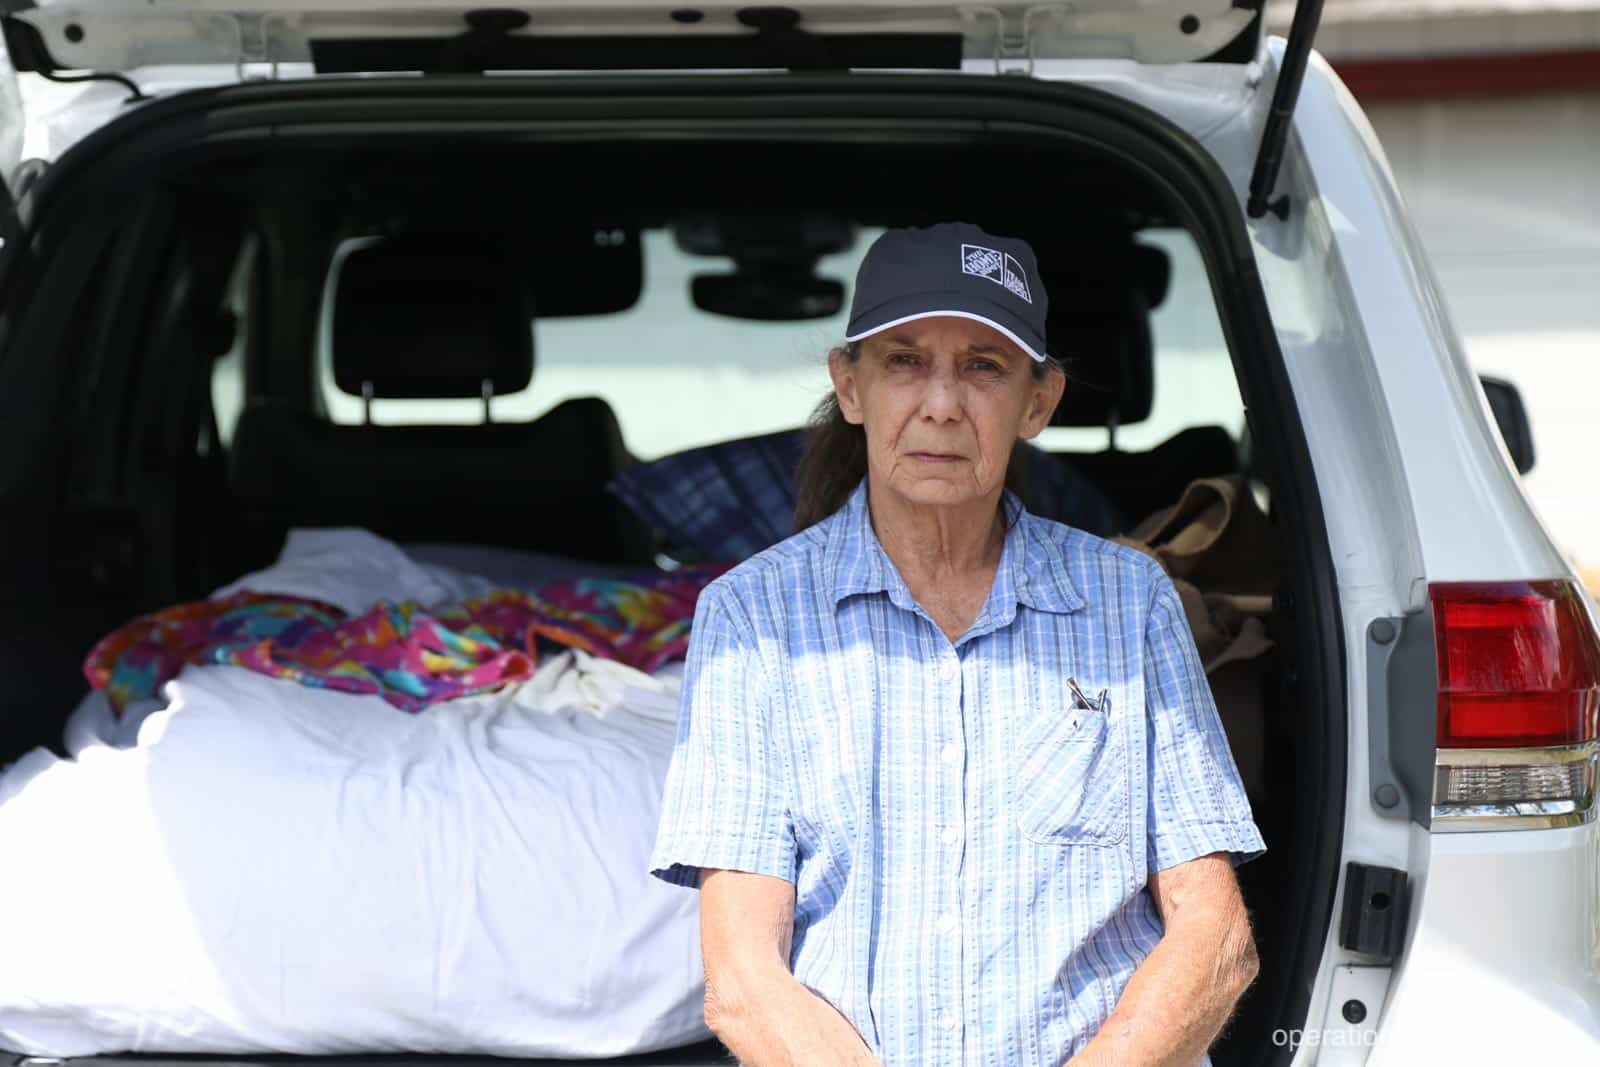 With nowhere to go, Priscilla slept on an air mattress in a rented Jeep in her driveway.